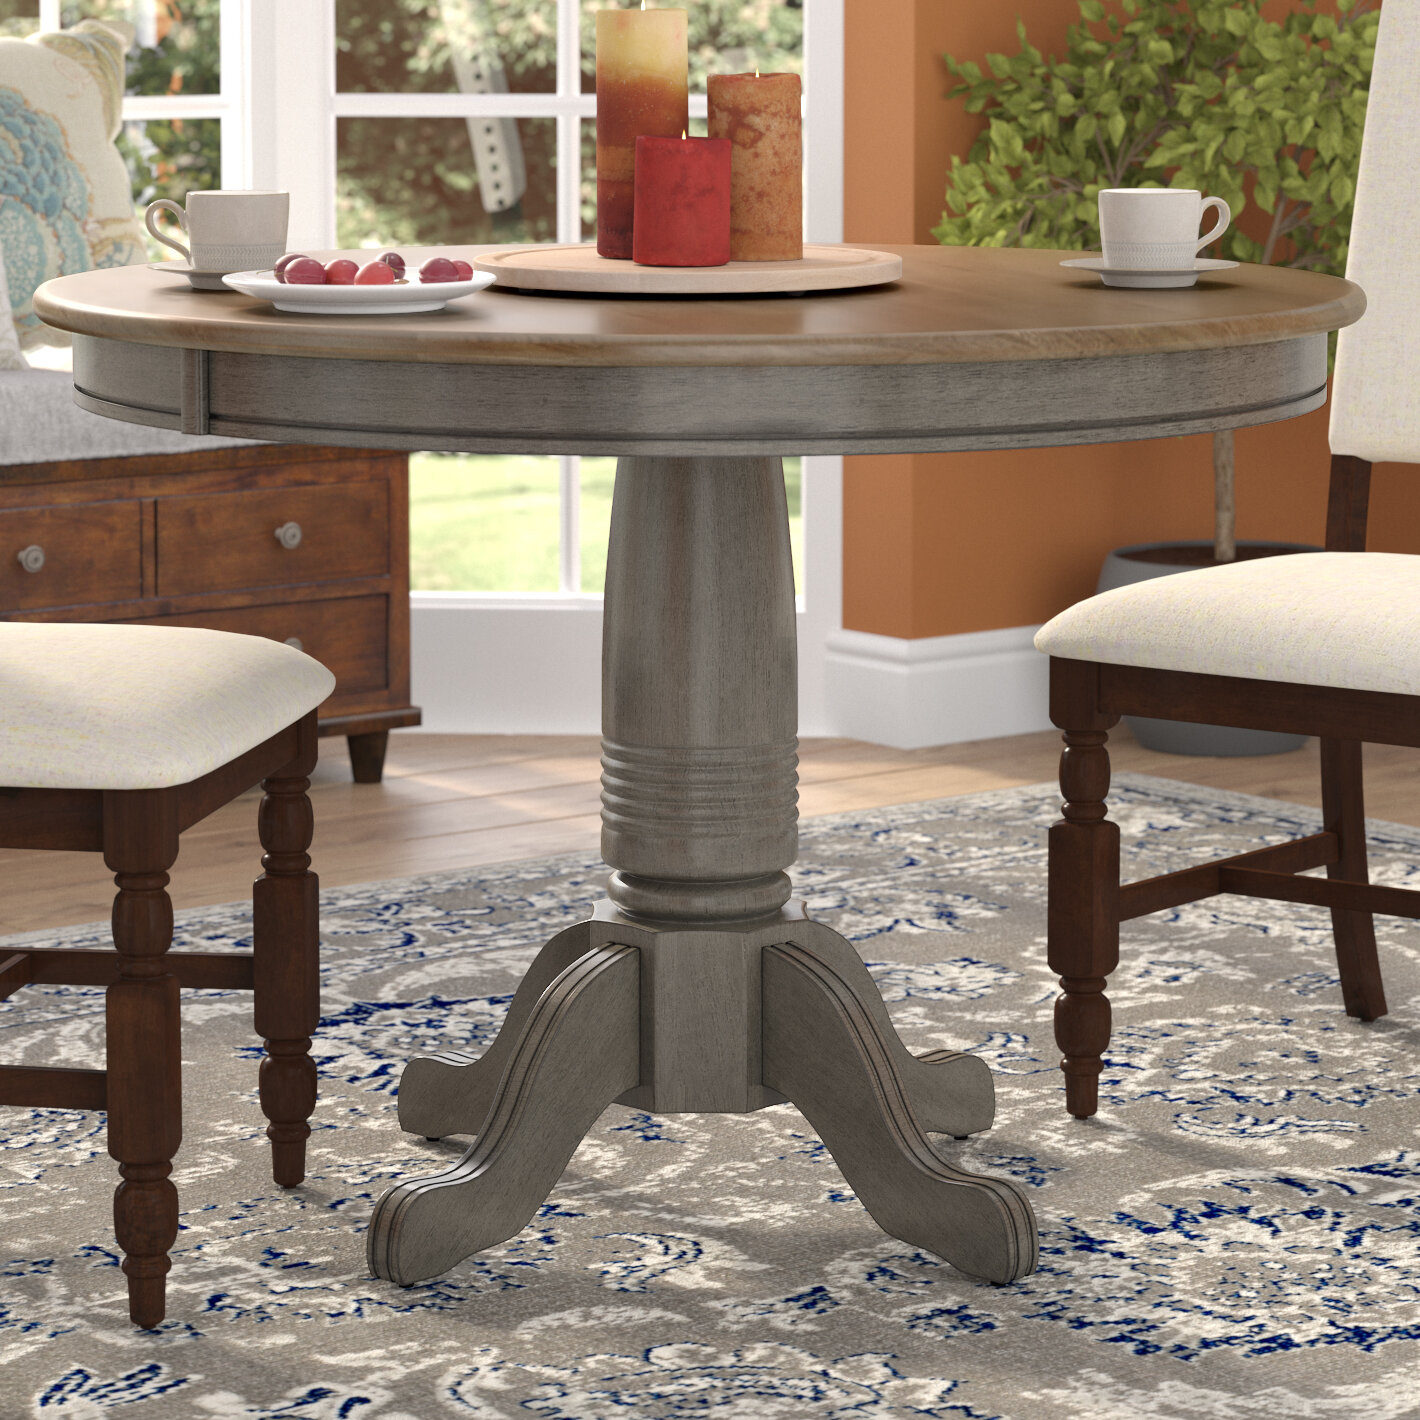 Alcott hill coldspring round dining table reviews wayfair